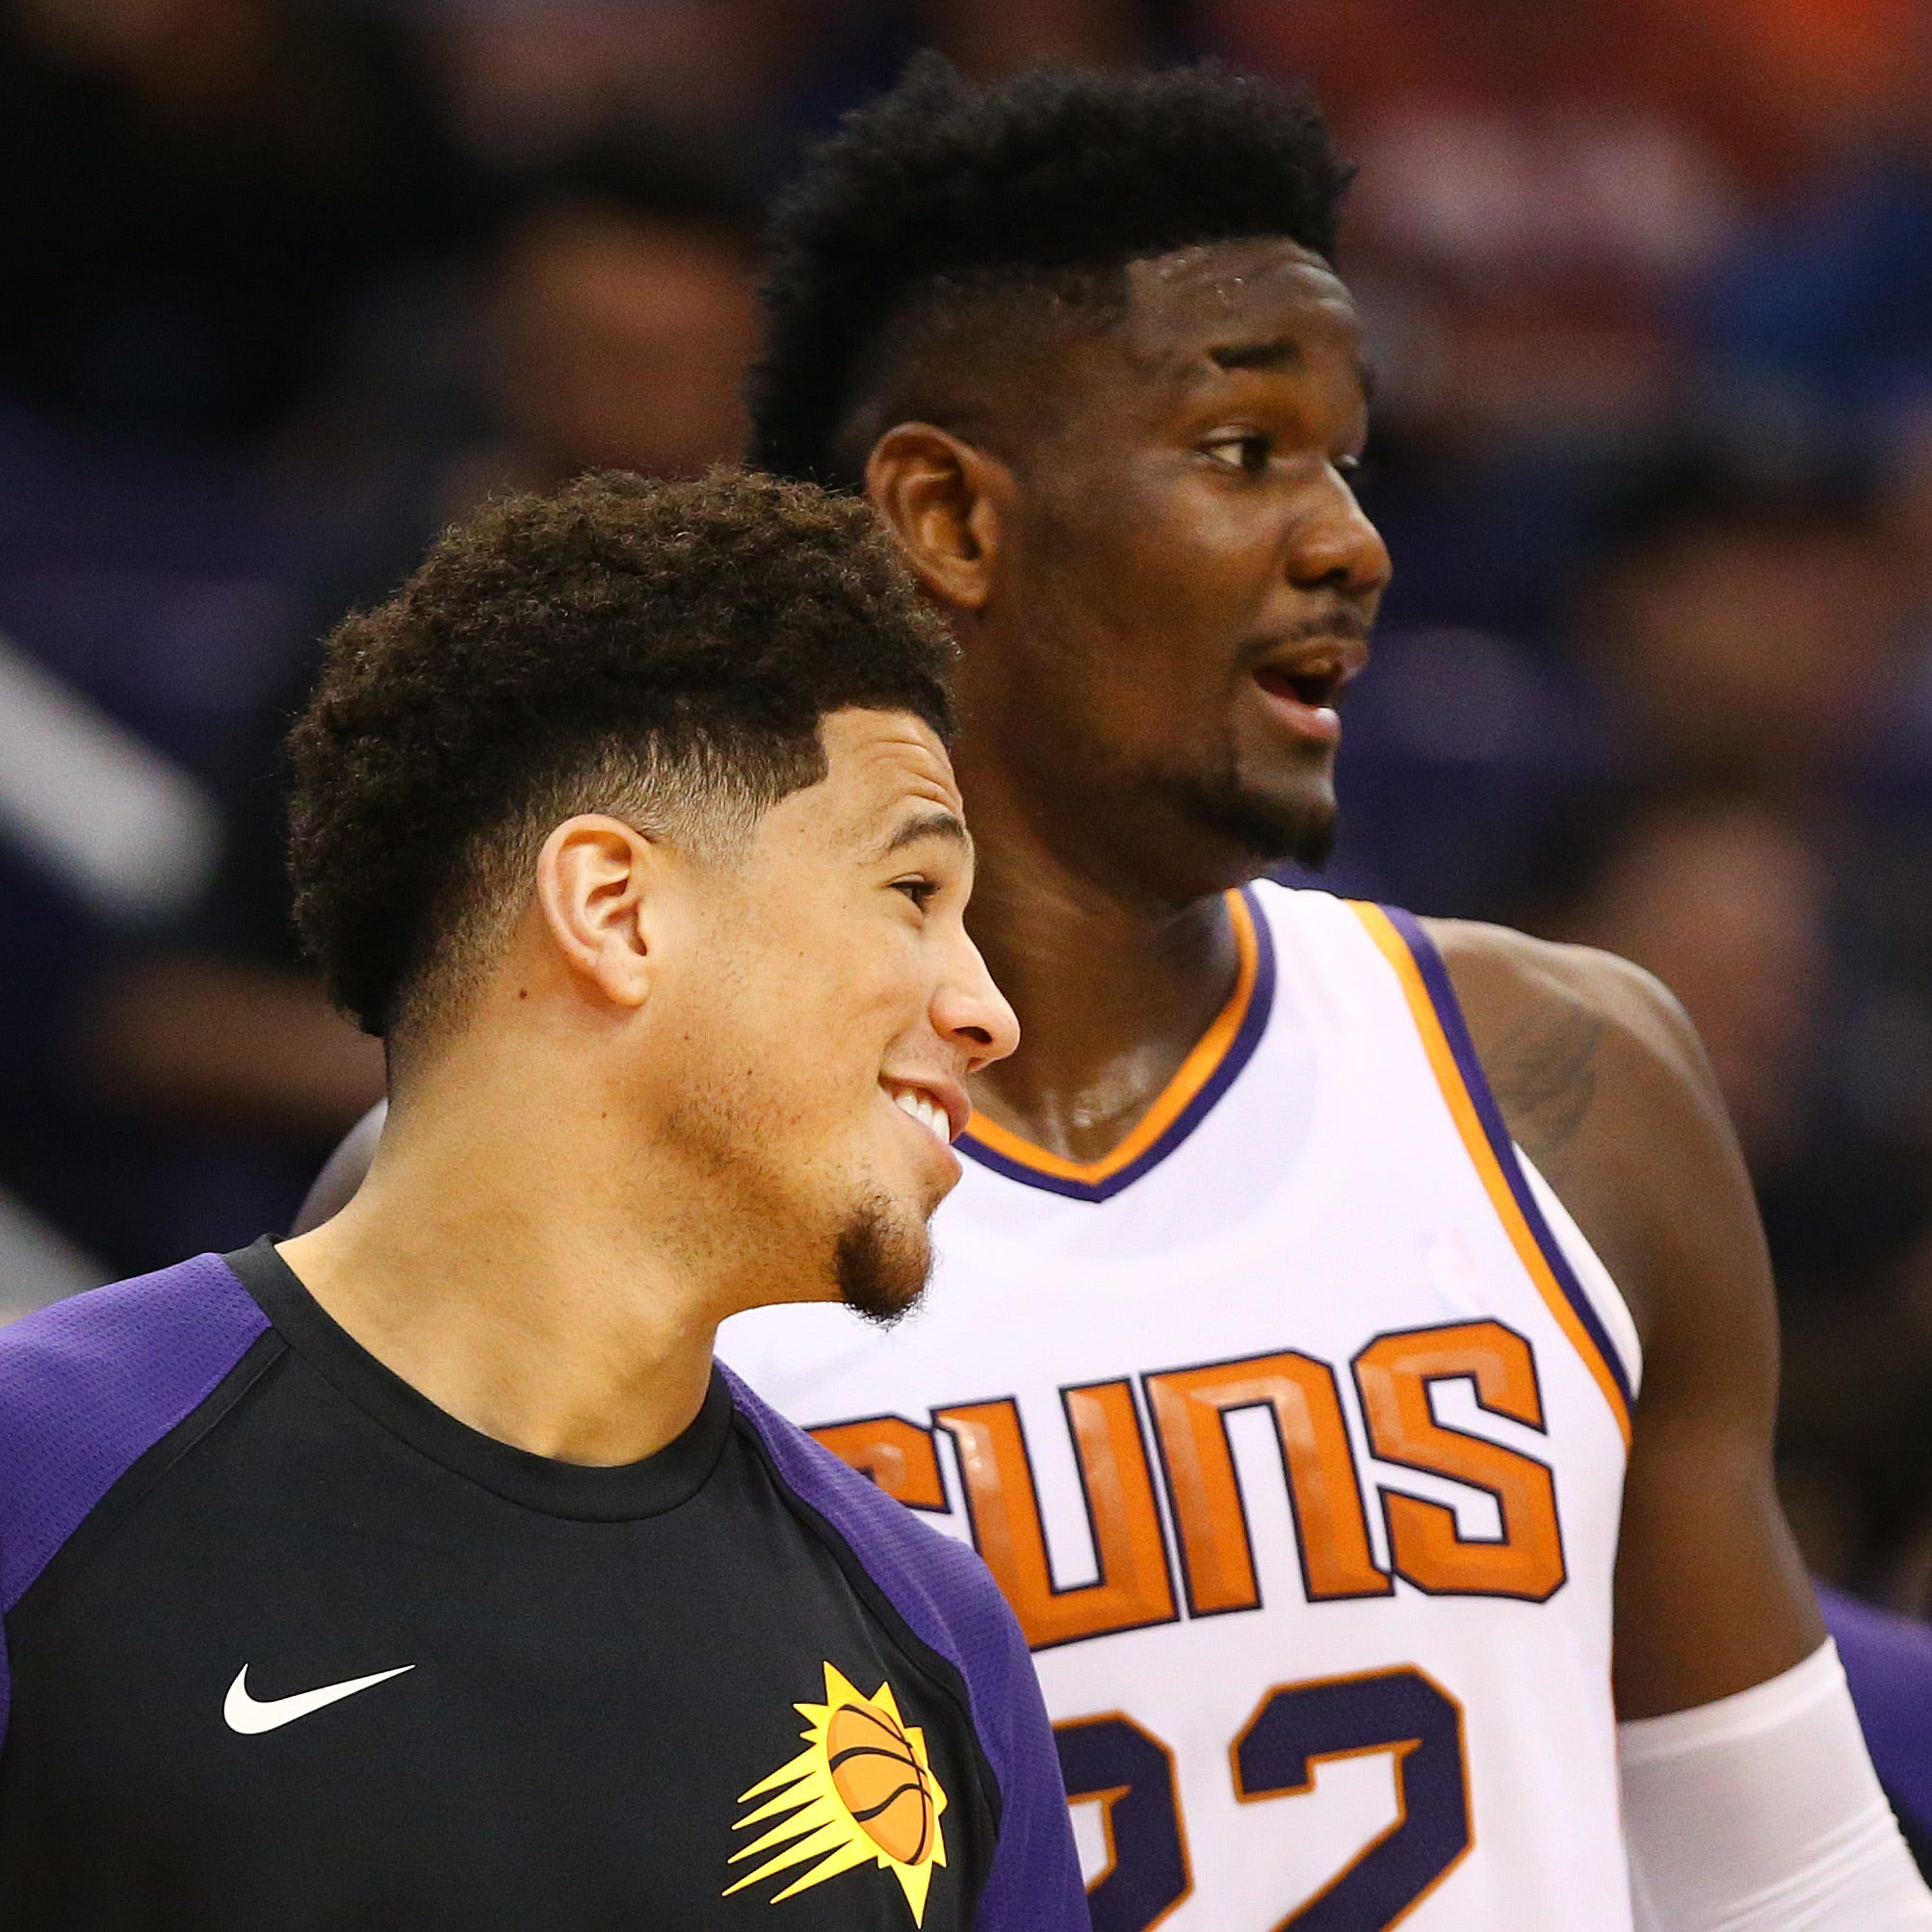 Meet the 2018-19 Phoenix Suns players and coaches